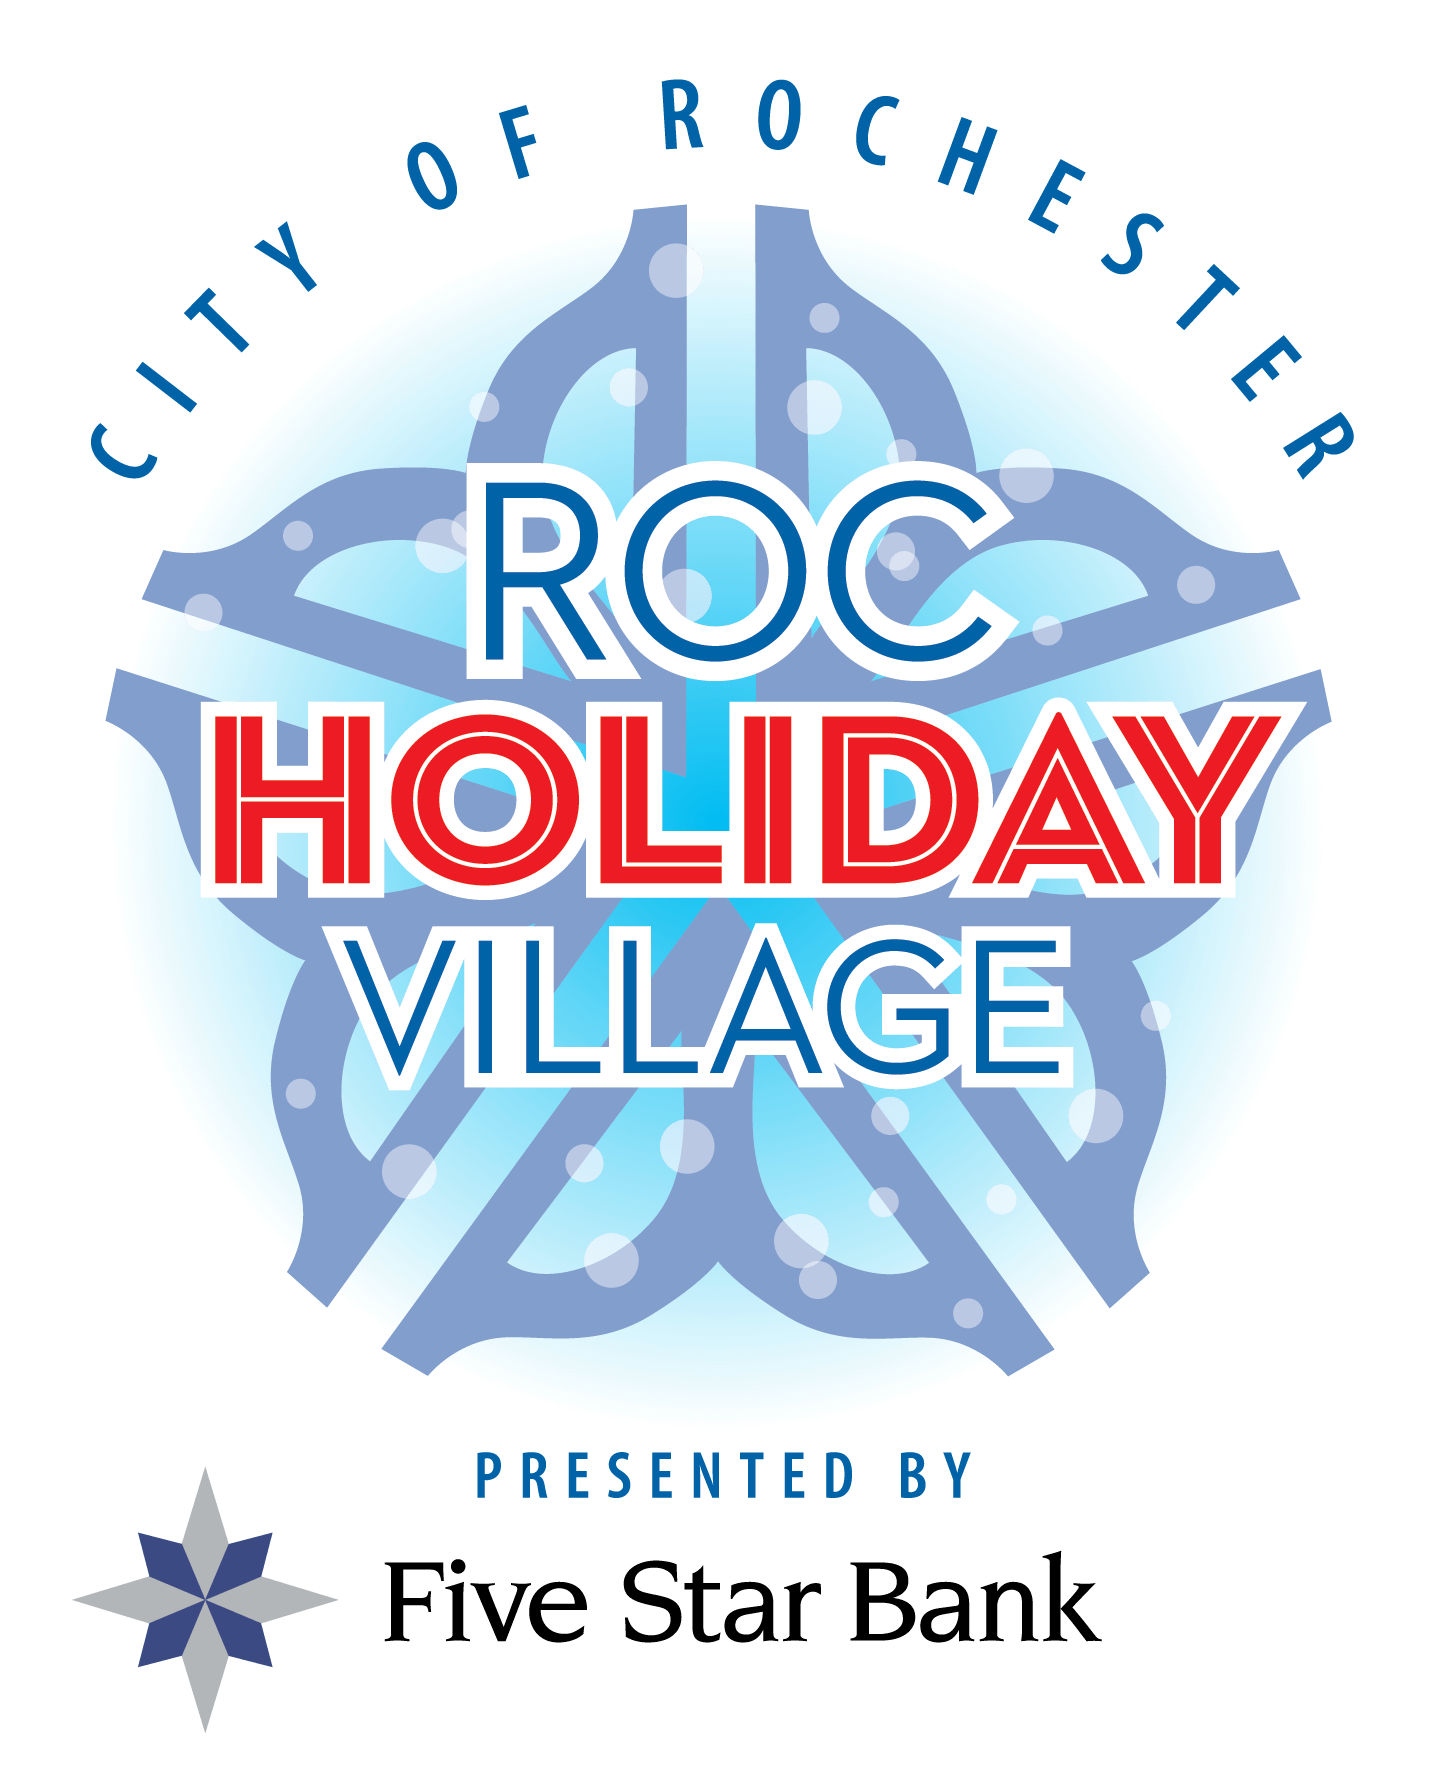 ROC Holiday Village